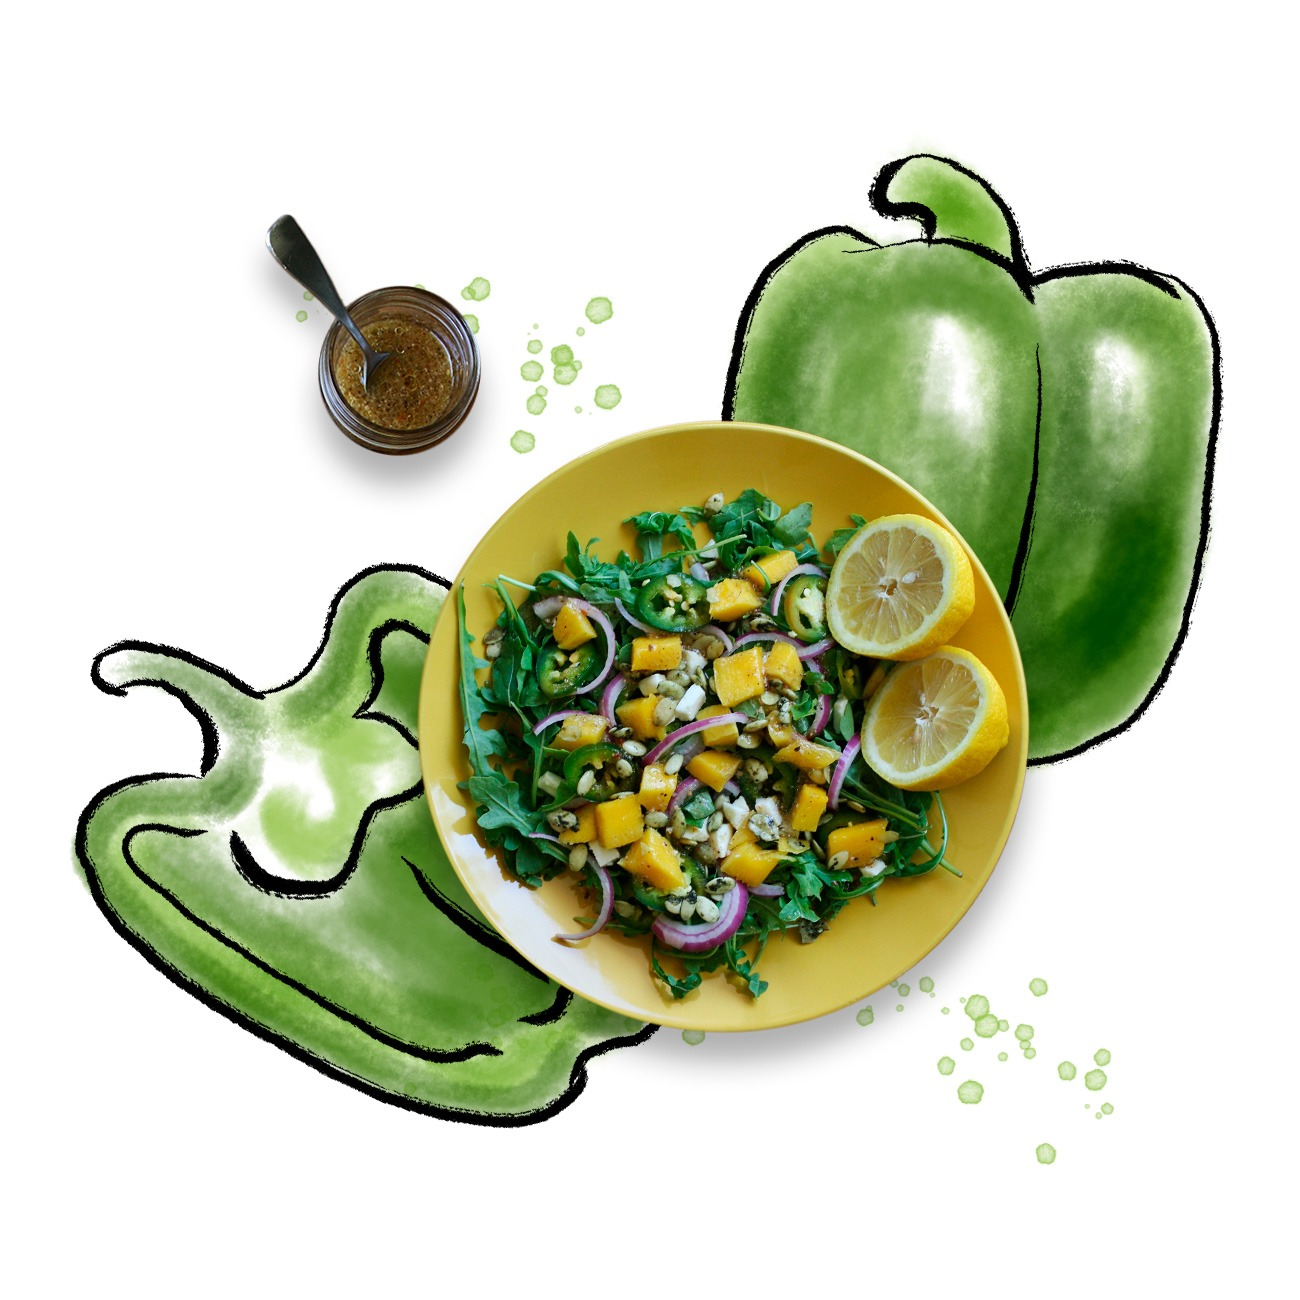 illustrated green peppers with a salad